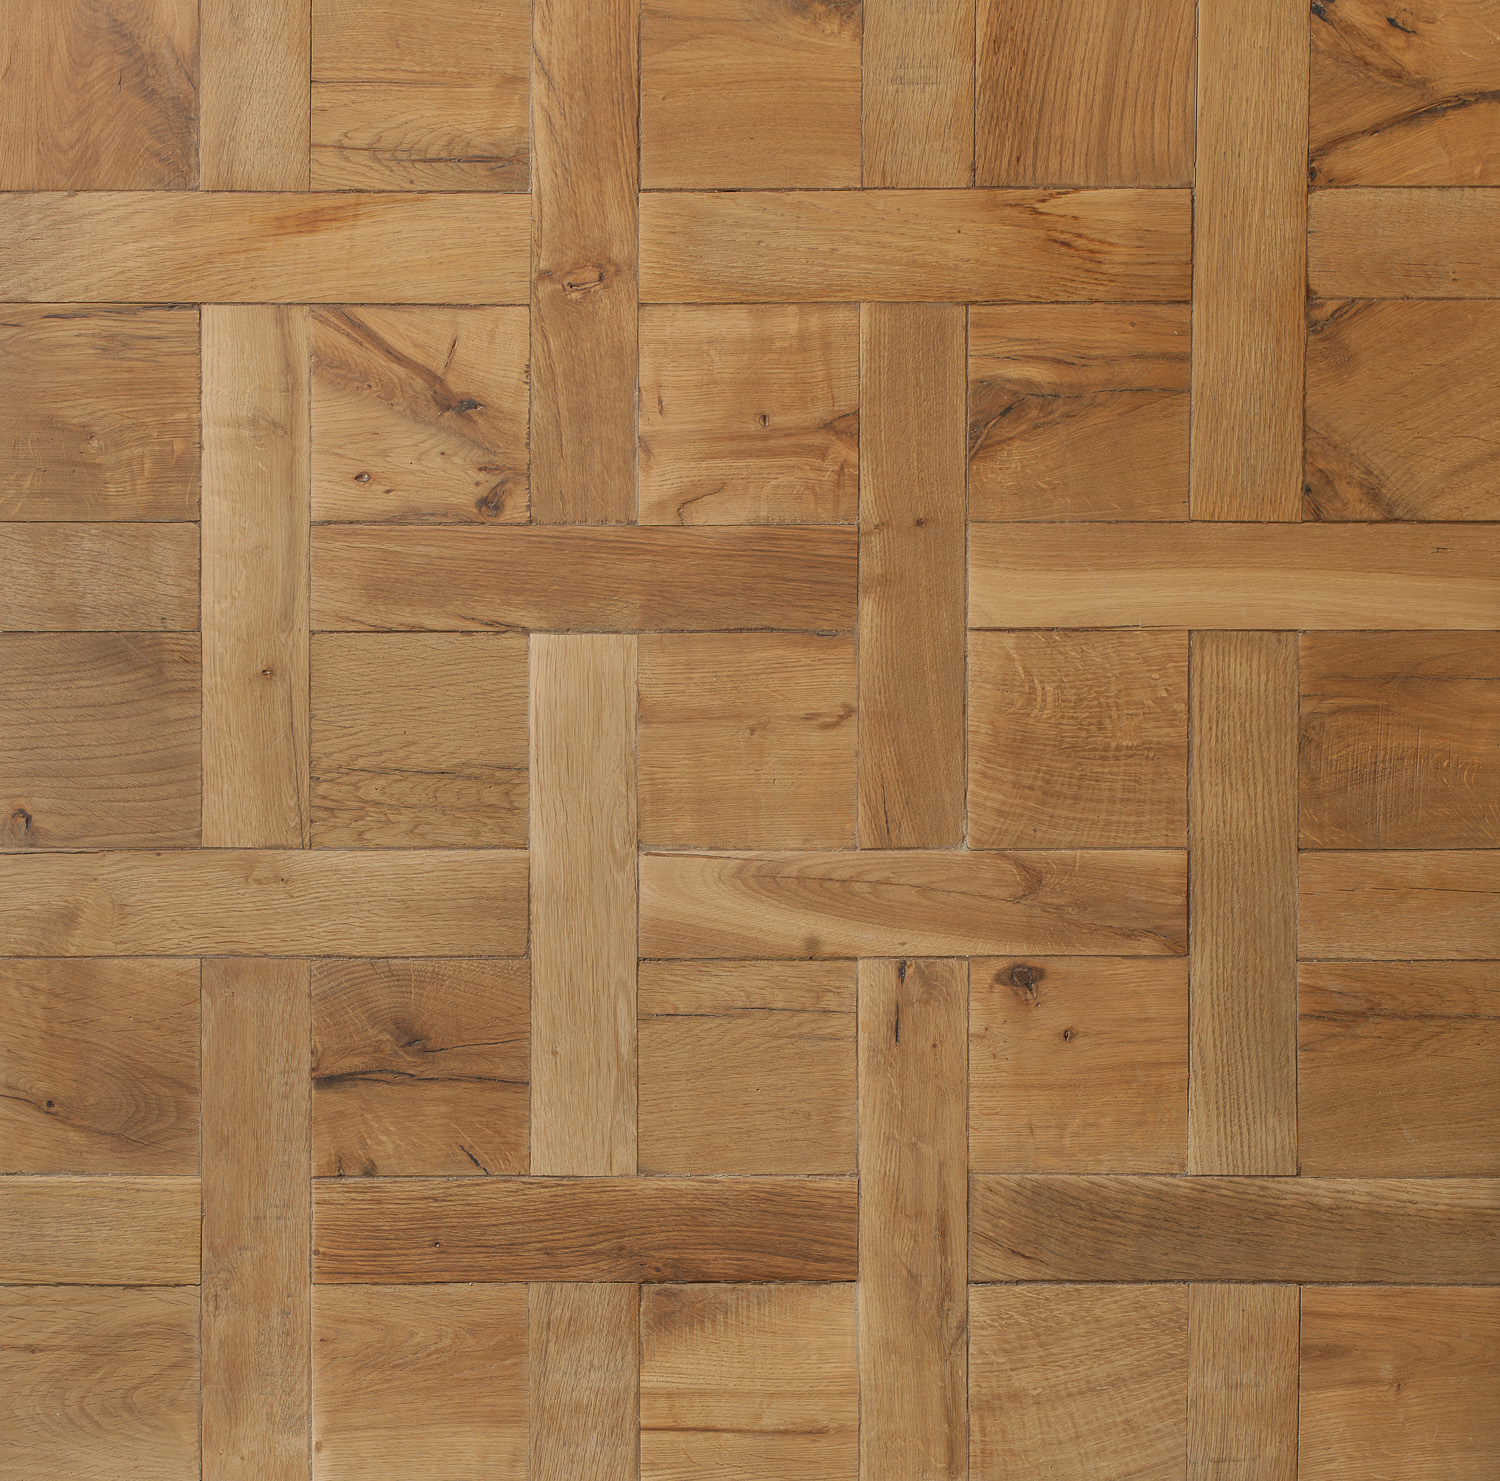 Reclaimed Mid Century French Oak: Continuous Versailles